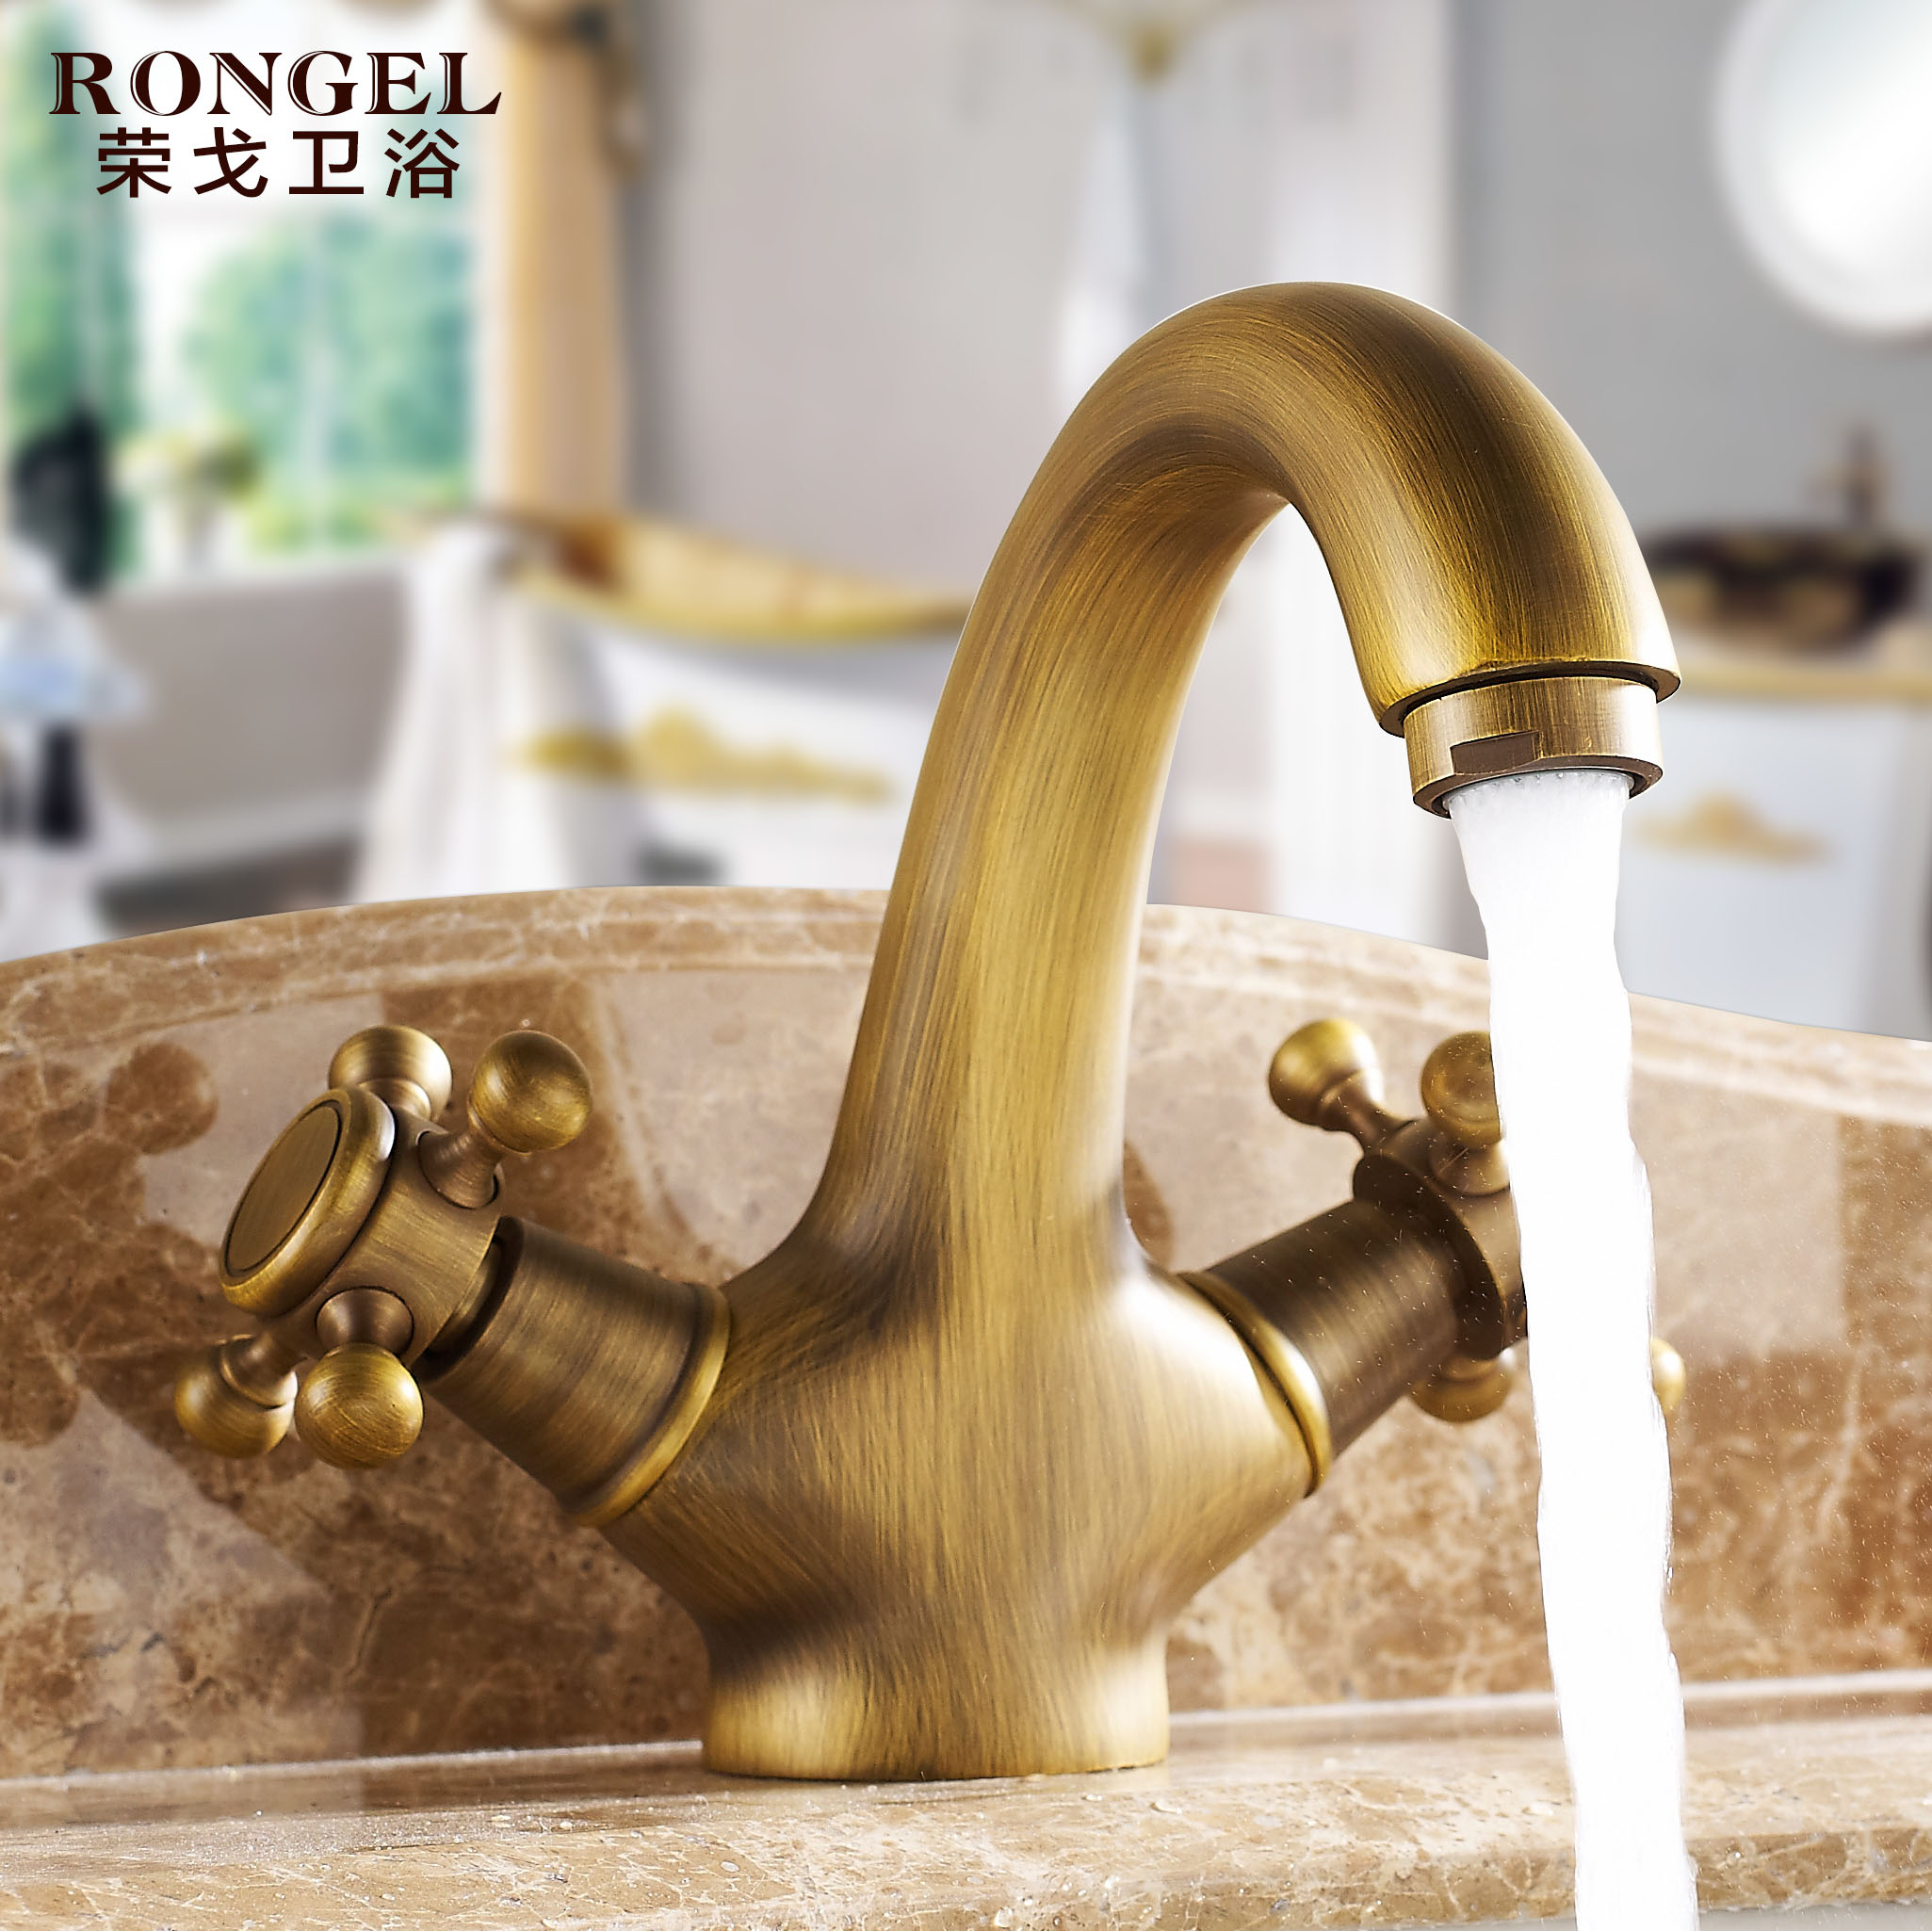 The whole european copper continental antique copper faucet basin faucet hot and cold hands round pastoral retro hot and cold taps